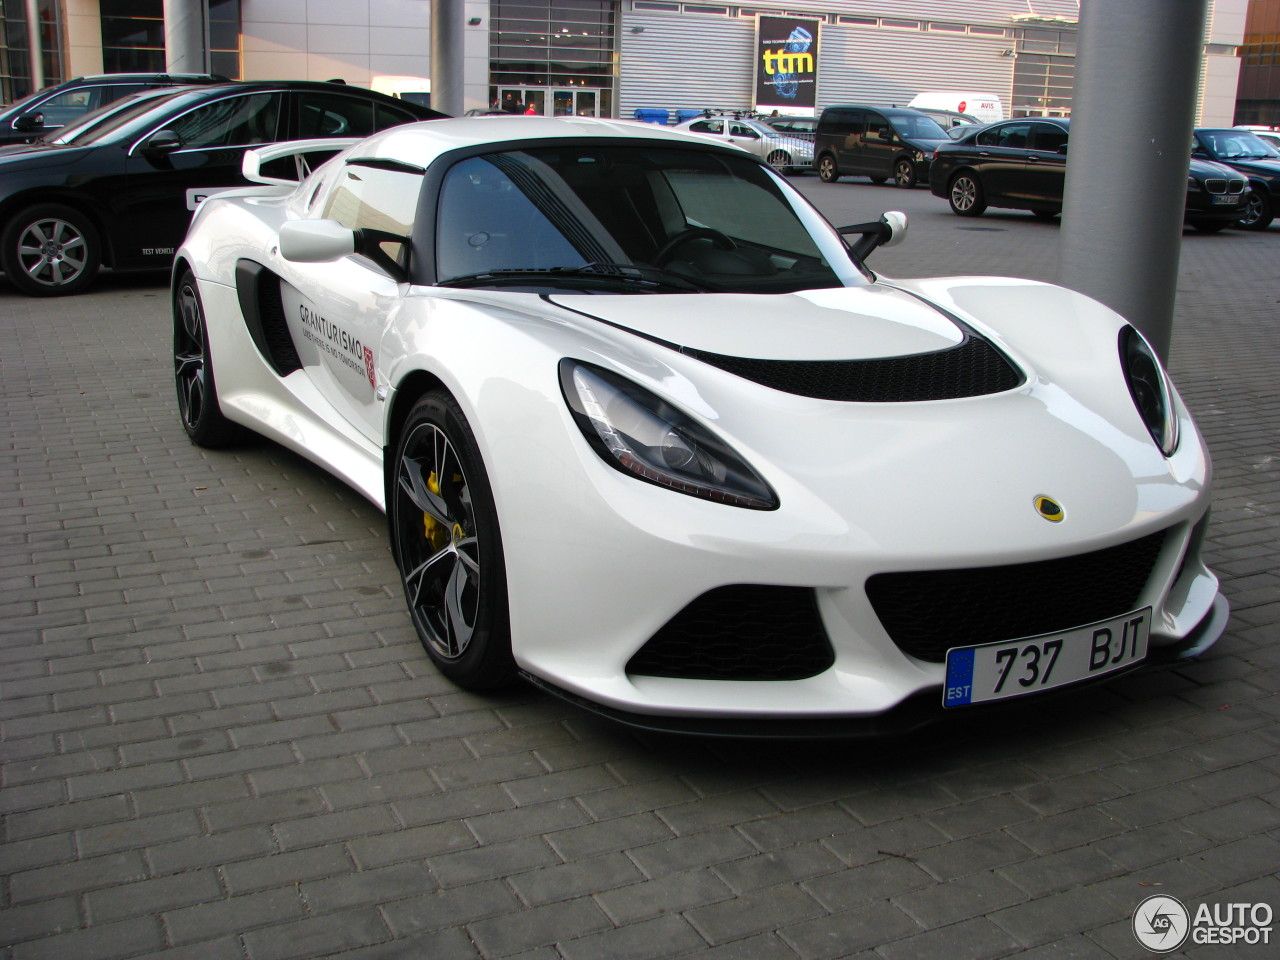 Lotus Exige S 2012 - 29 May 2017 - Autogespot